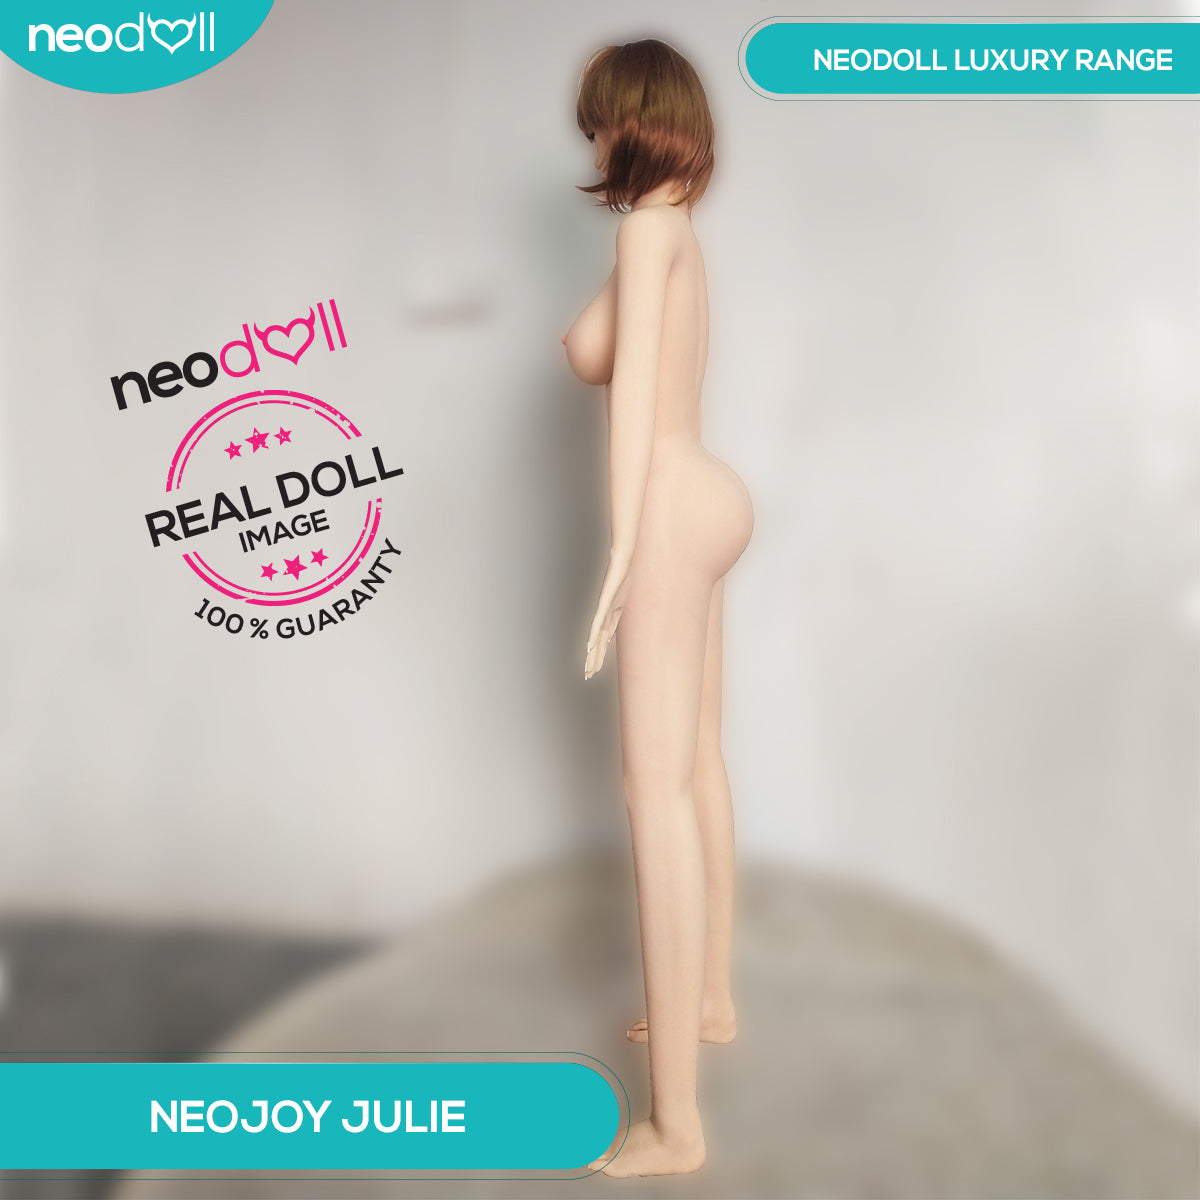 Neodoll Luxury Julie - Realistic Sex Doll - 165cm